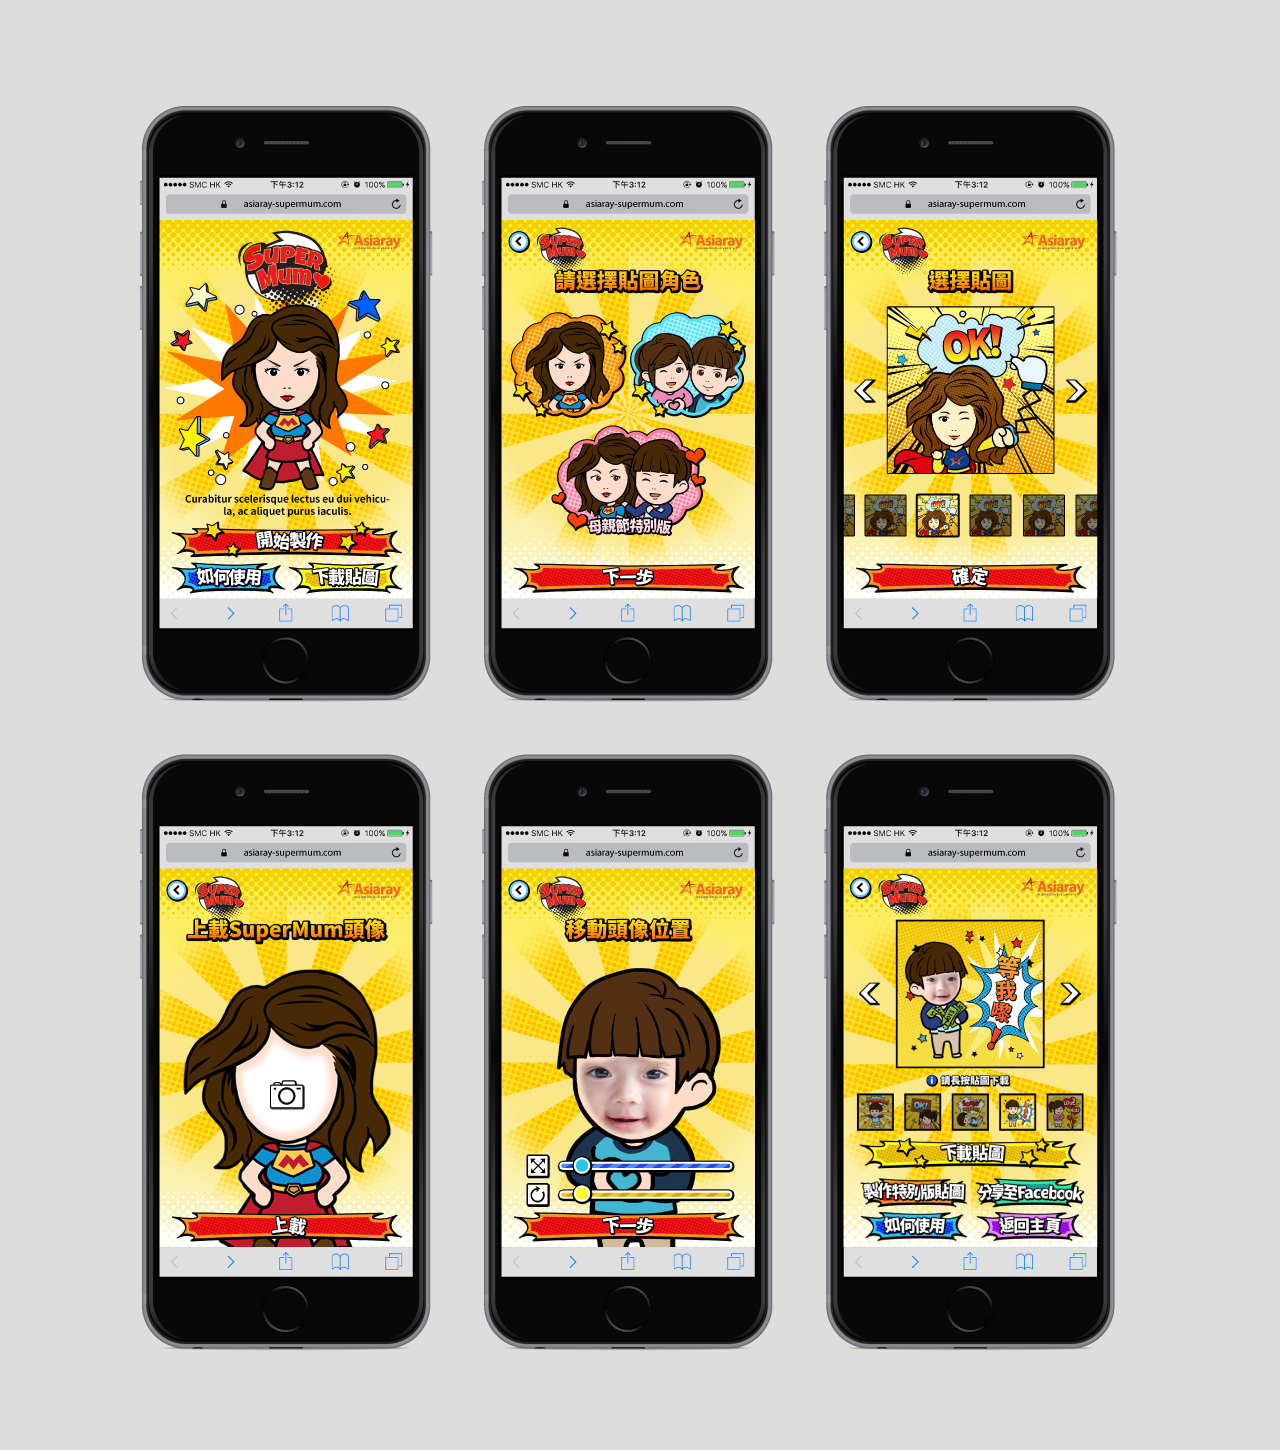 Asiaray Motherday Animated Sticker for Instant Messaging Apps